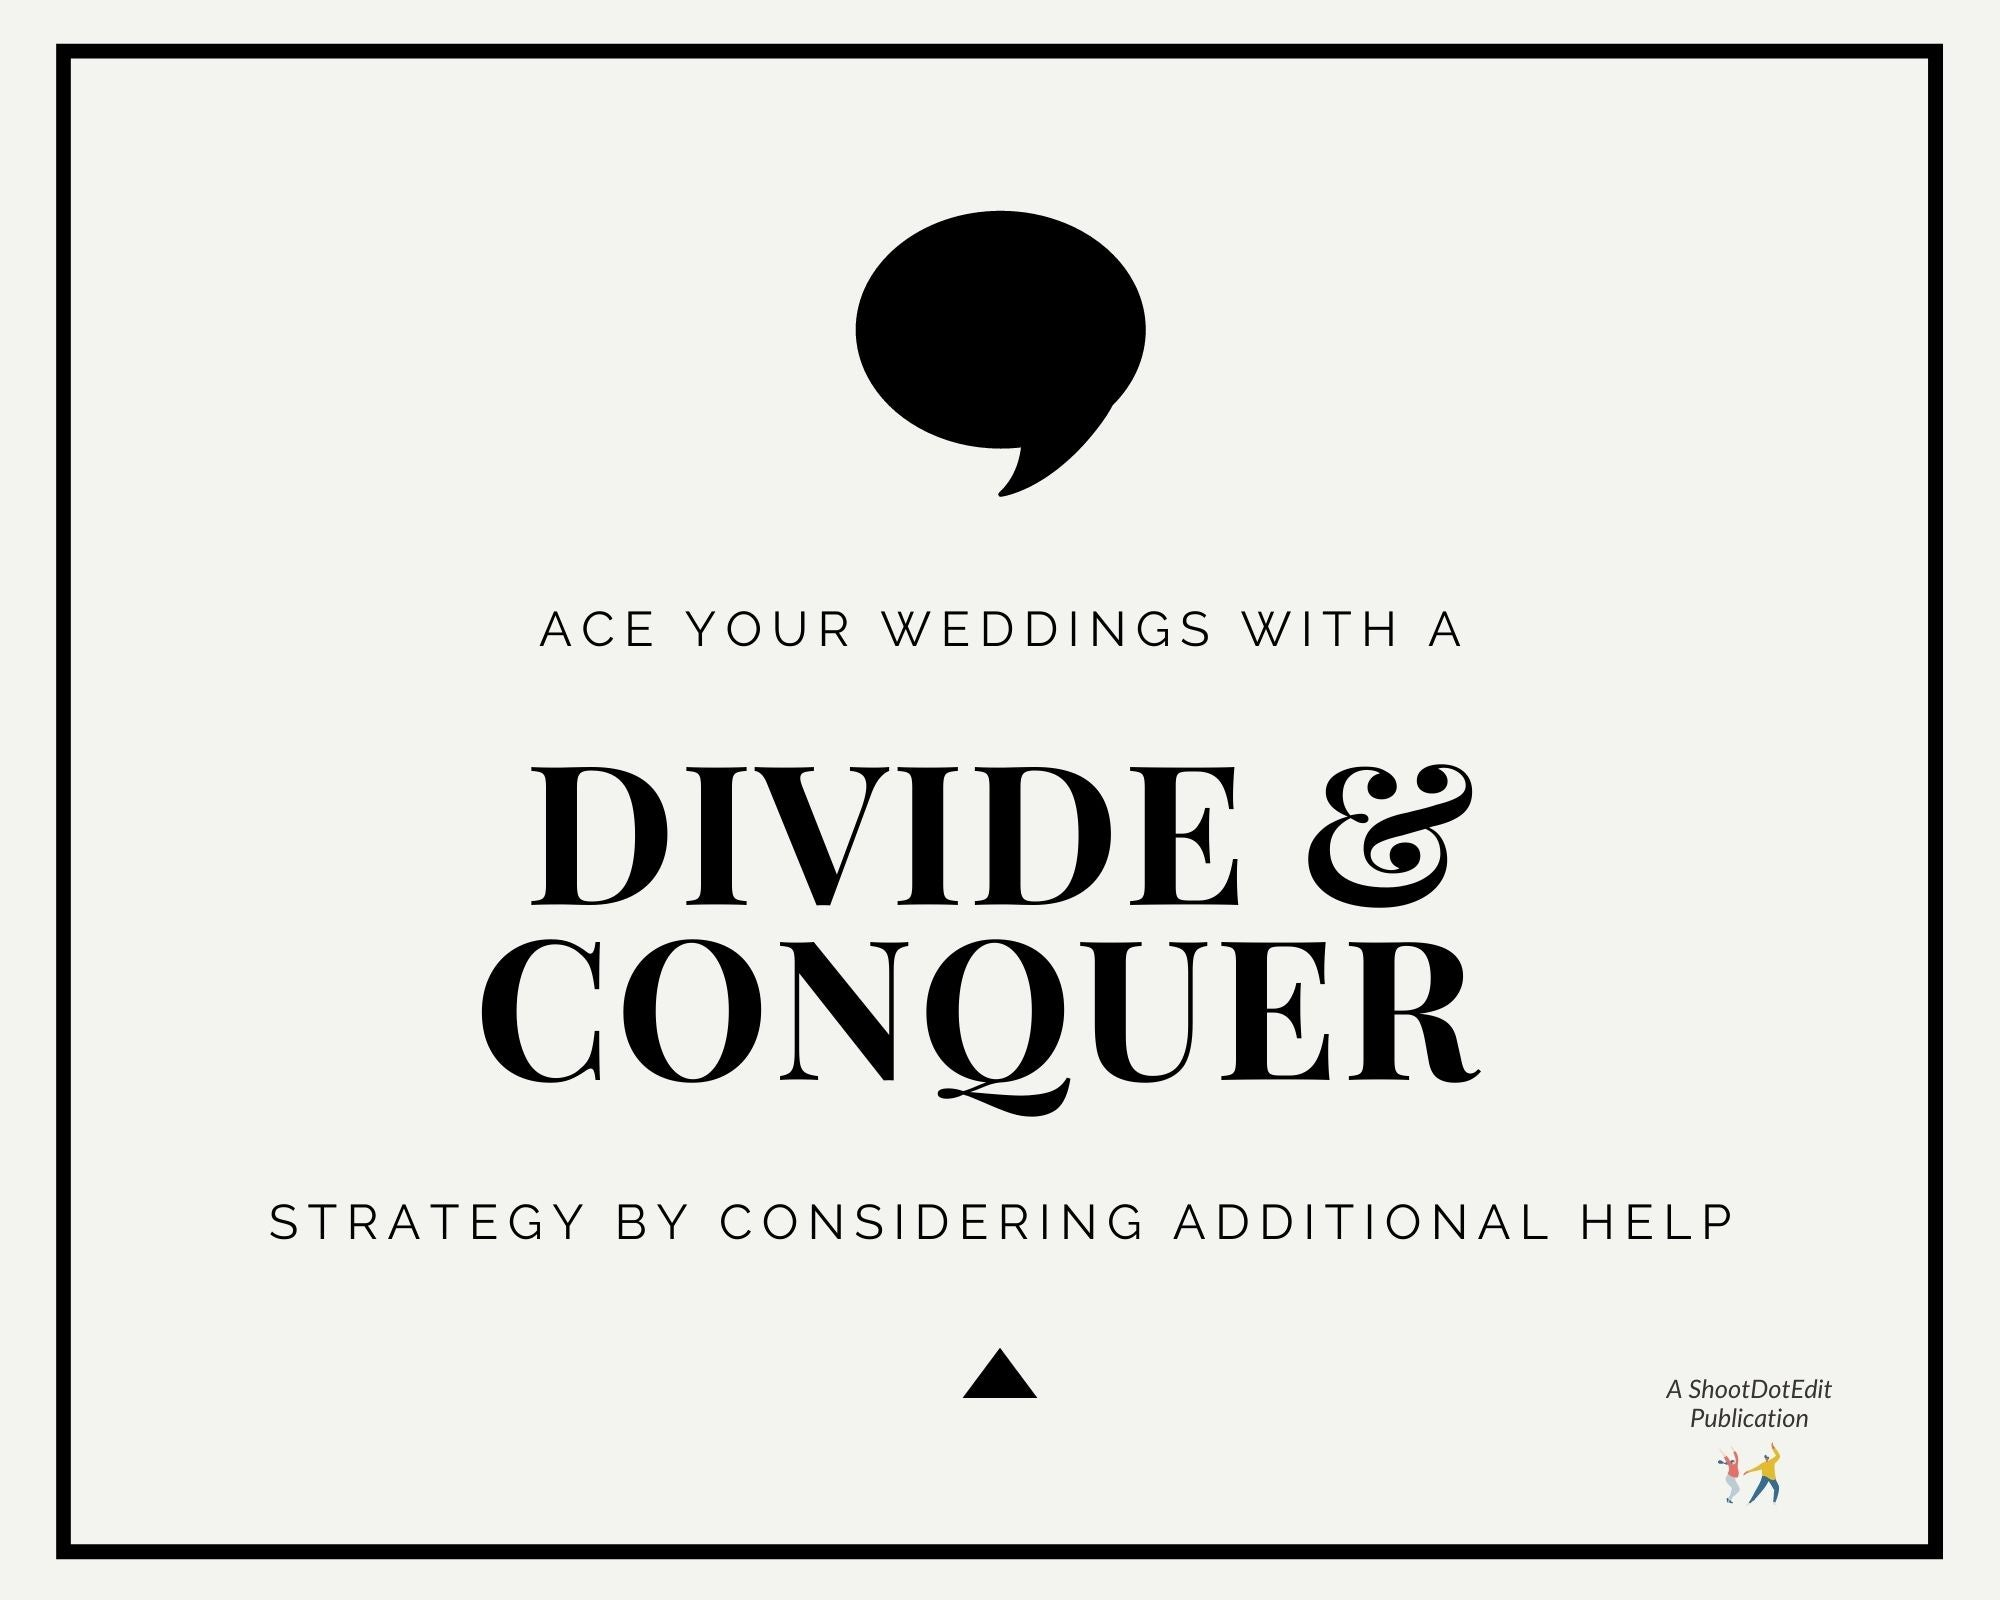 Infographic stating ace your weddings with a divide and conquer strategy by considering additional  help